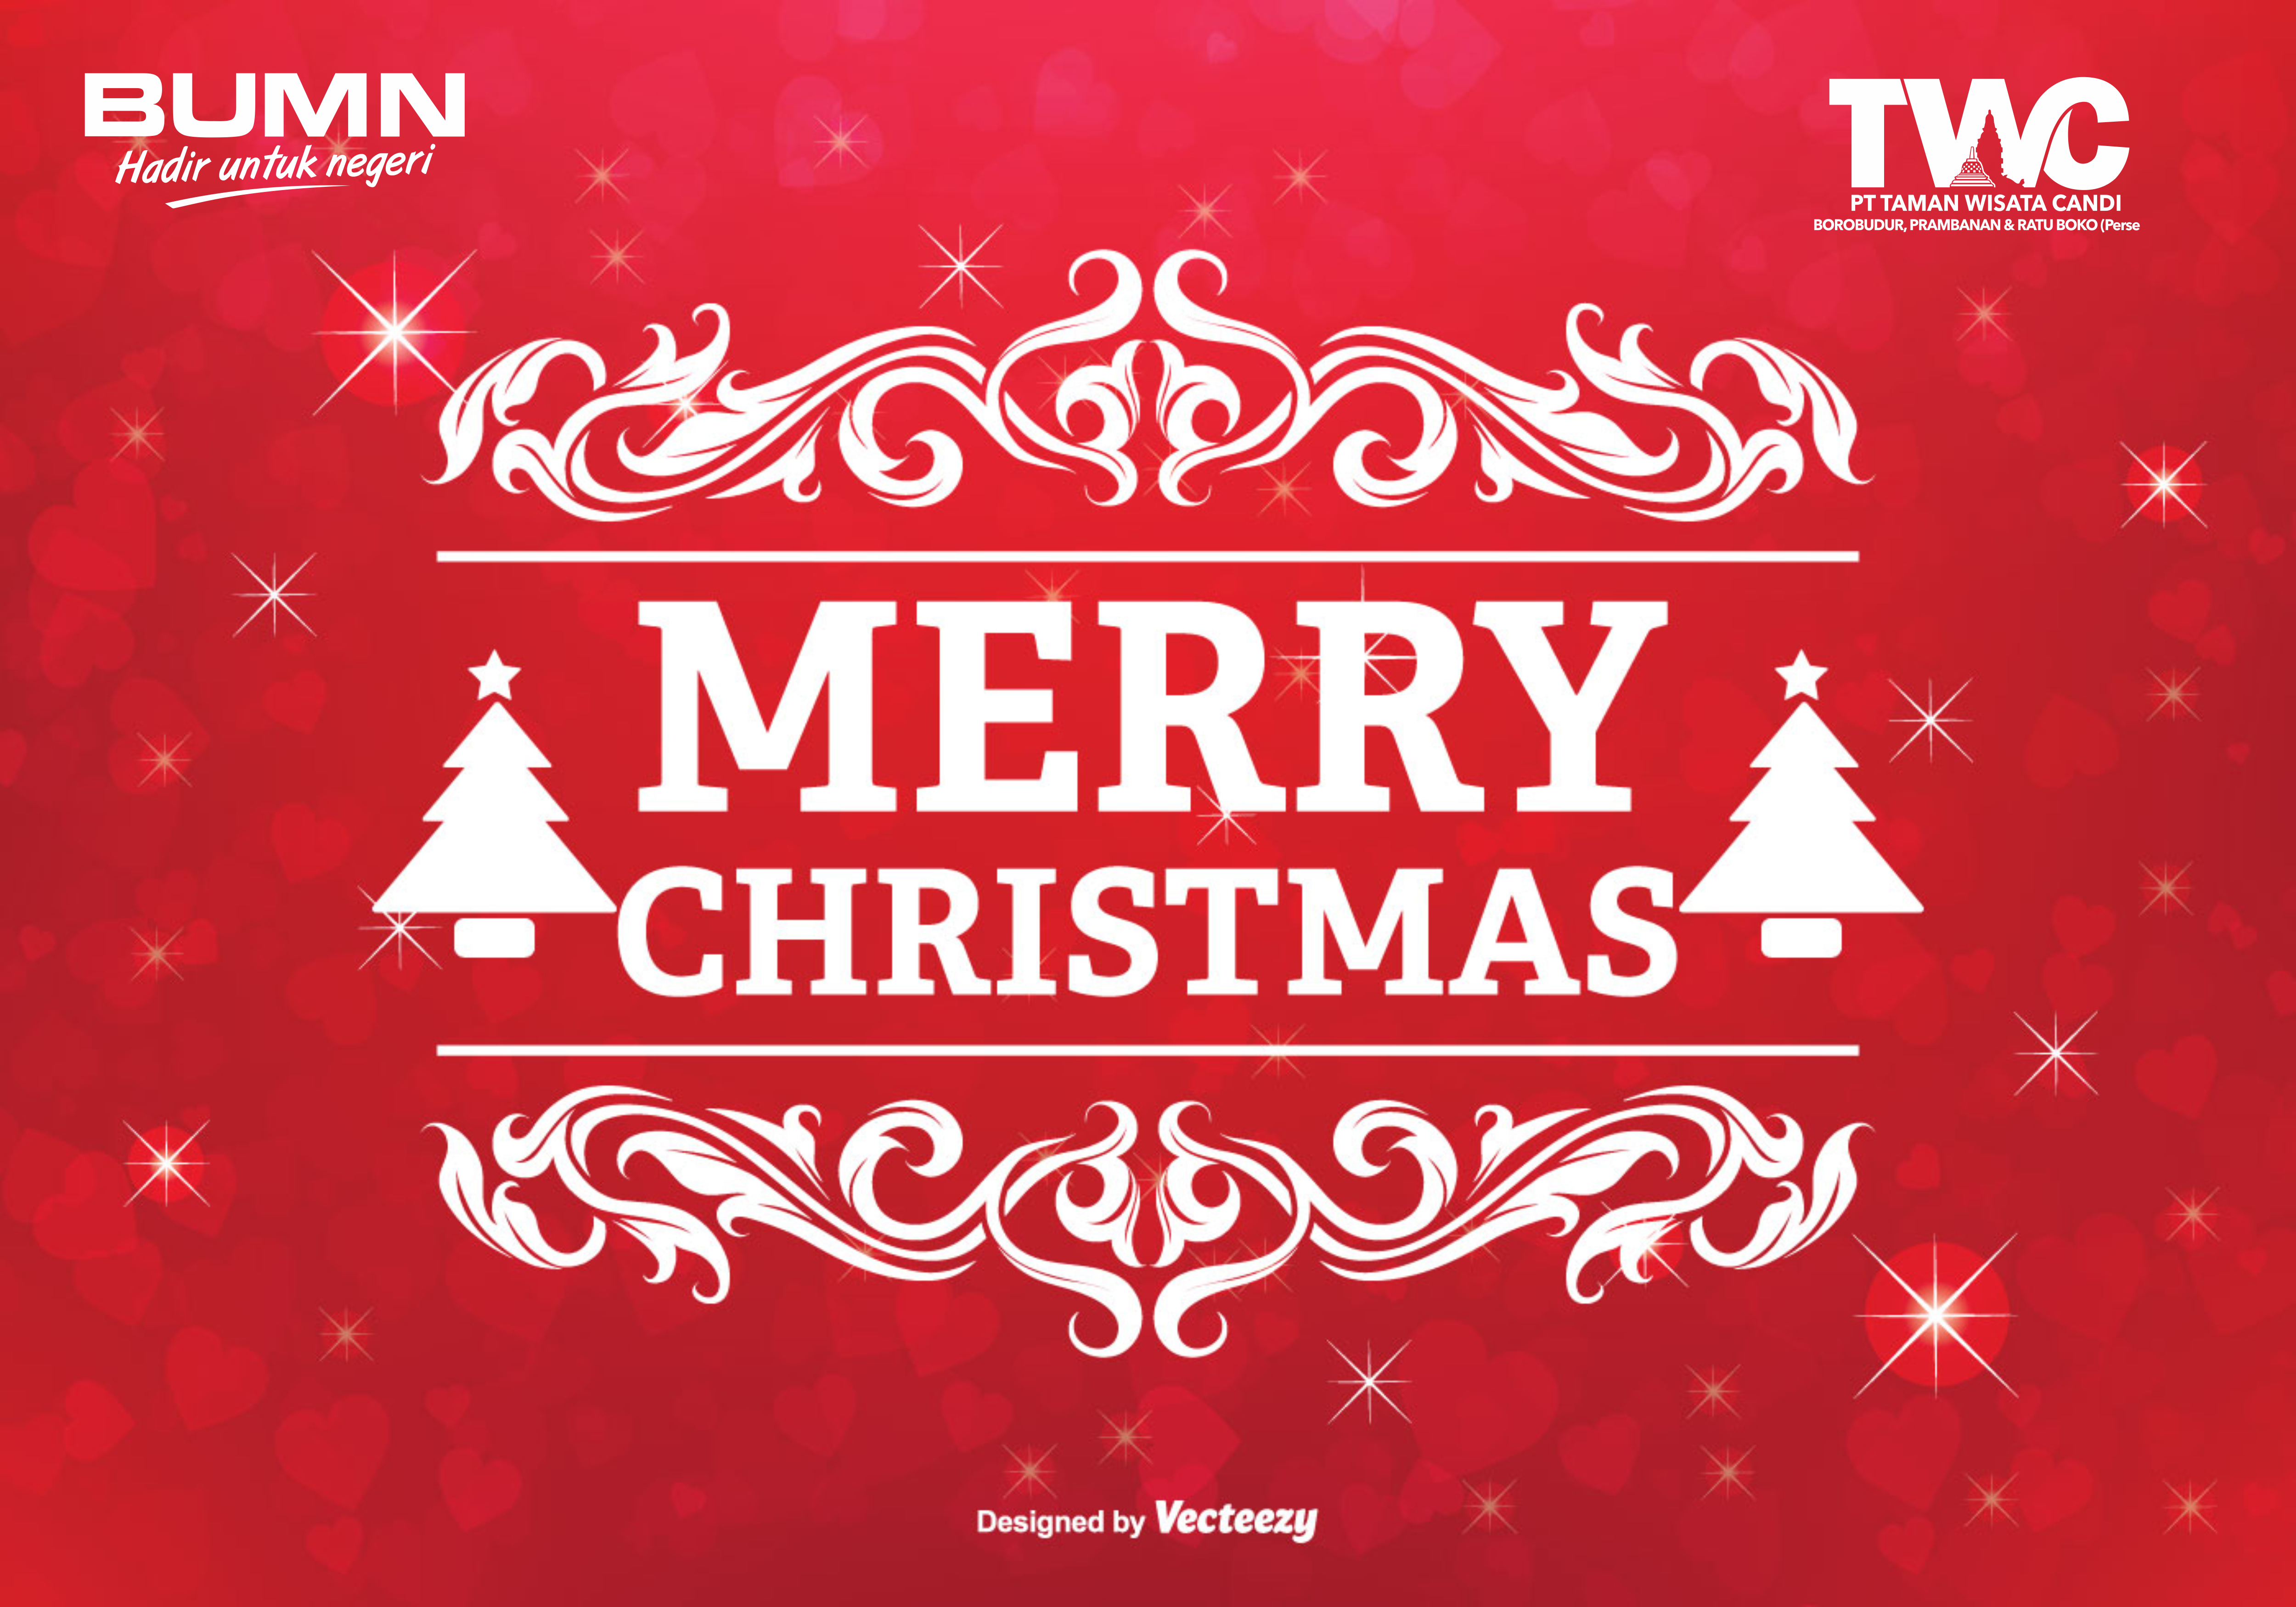 Merry christmas 2017 taman wisata candi christmas is about spending time with family and friends its about creating happy memories that will last a lifetime merry christmas to you and your kristyandbryce Choice Image